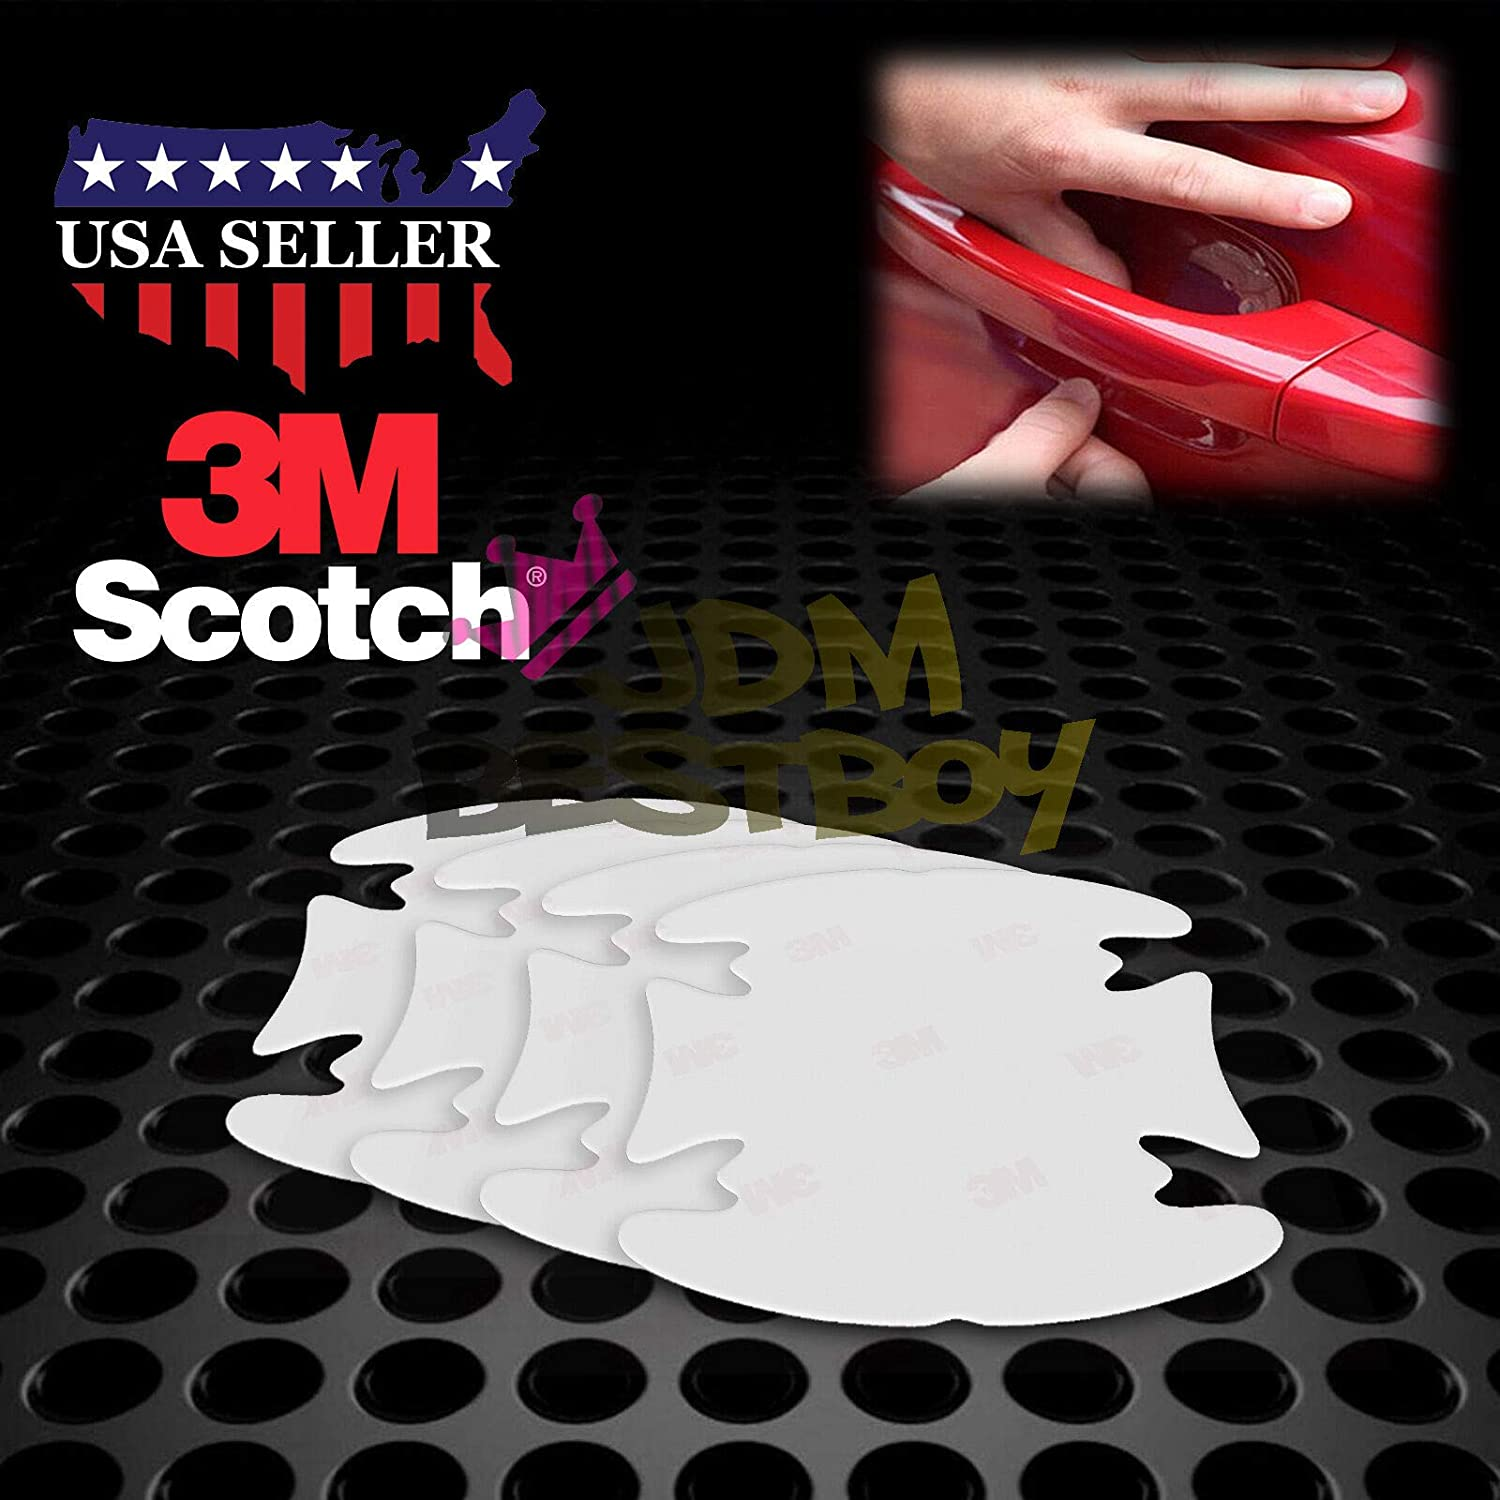 2x 3M Scotchguard Clear Paint Scratch Protector Door Handle Cup Film Bra #2